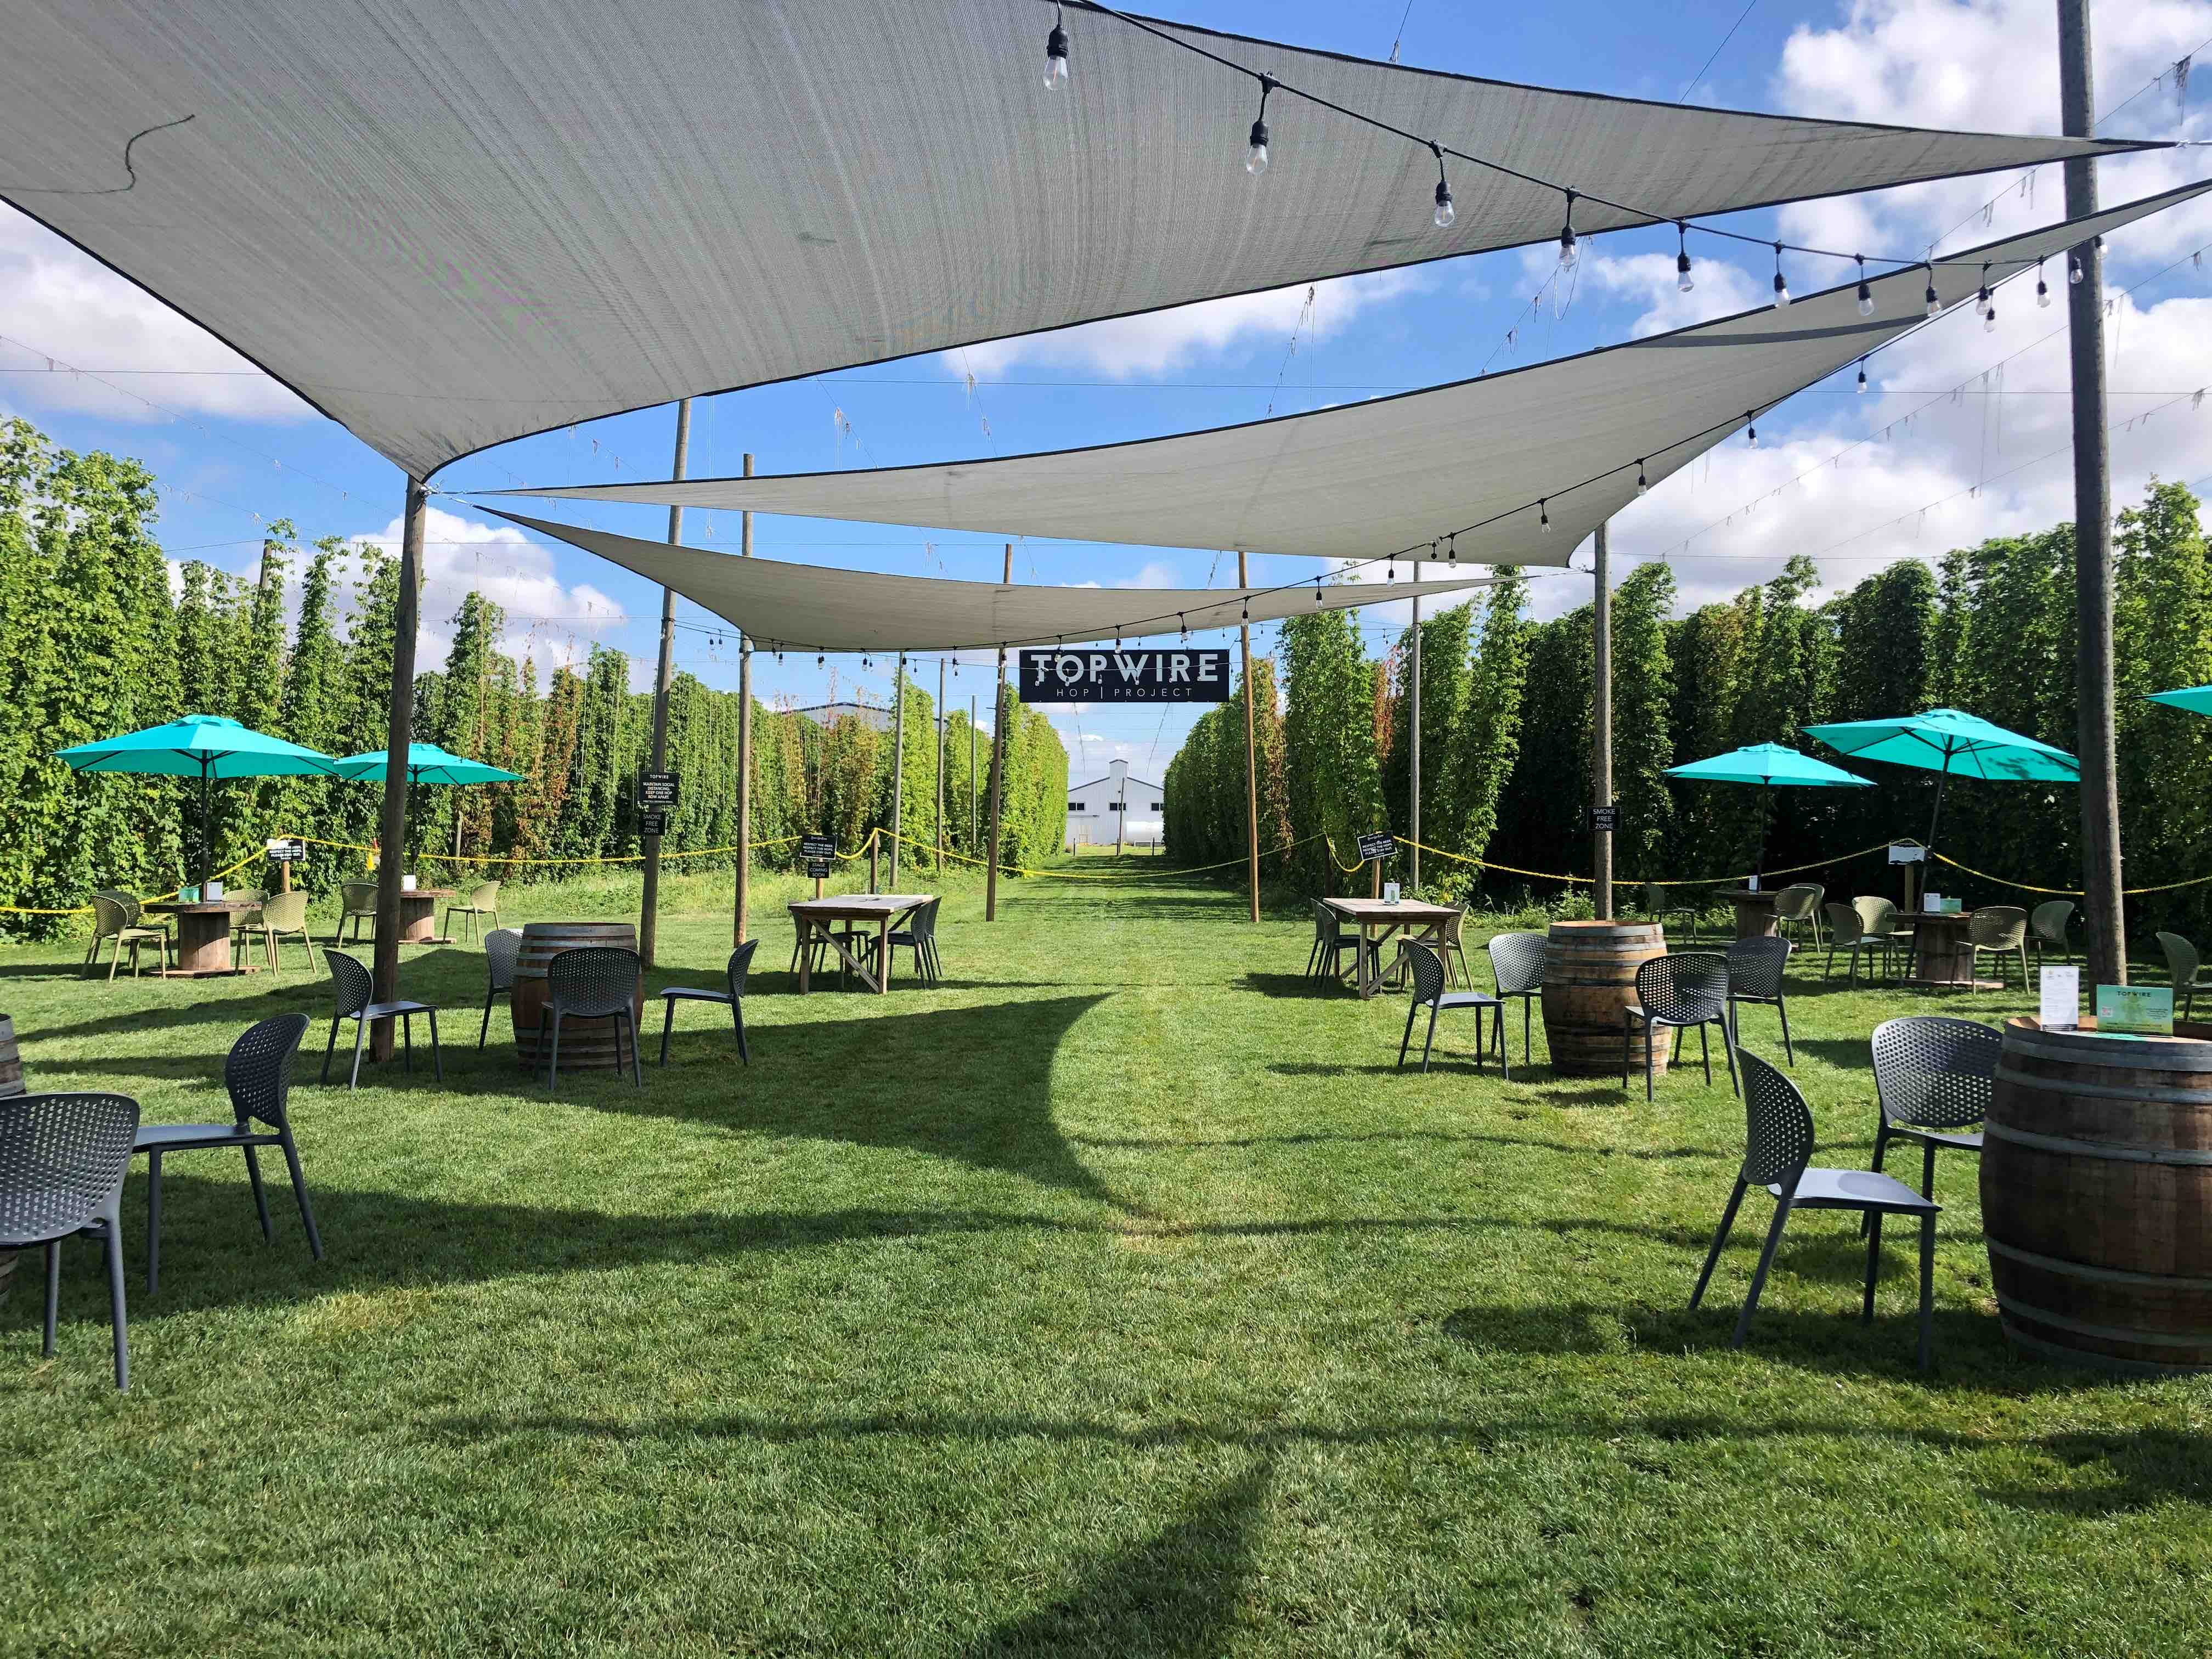 The Top Wire Hop Project beer garden when the hops bines are in full growth mode. (image courtesy of TopWire Hop Project)